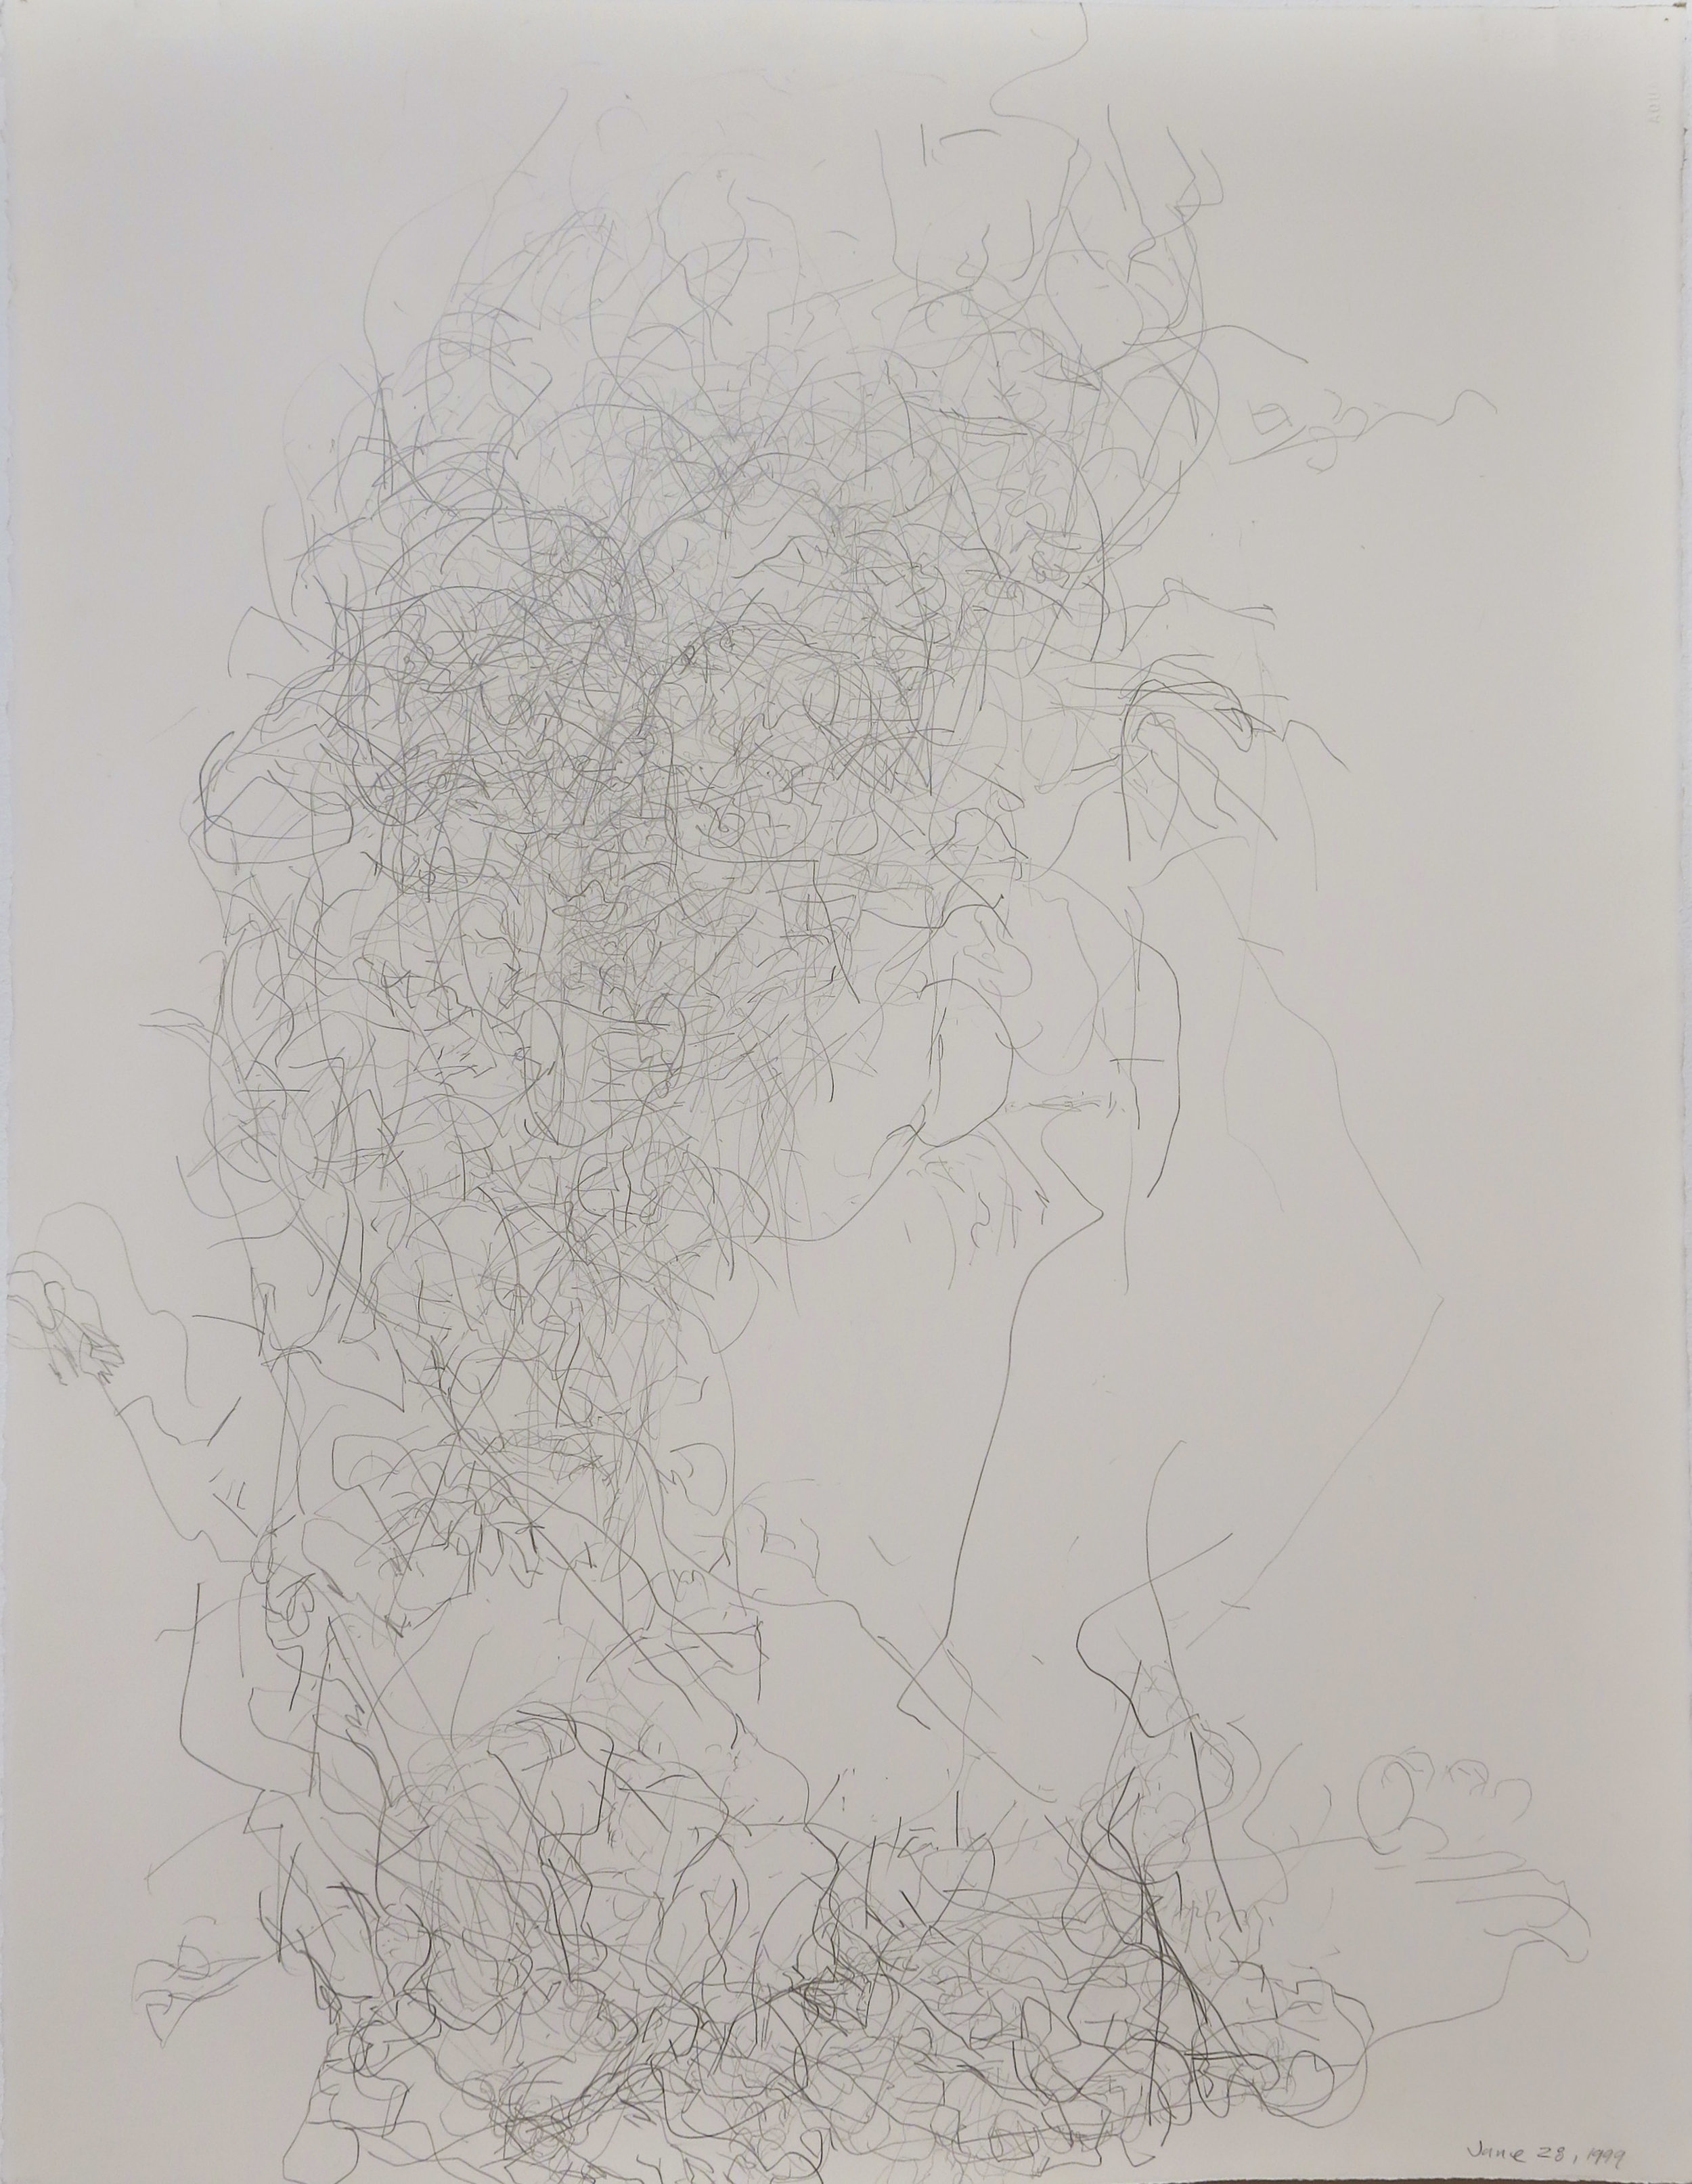 Edward Finnegan,  June 28, 1999 (Portraits series) , 1999, Graphite on paper, 30h x 22.5w in.